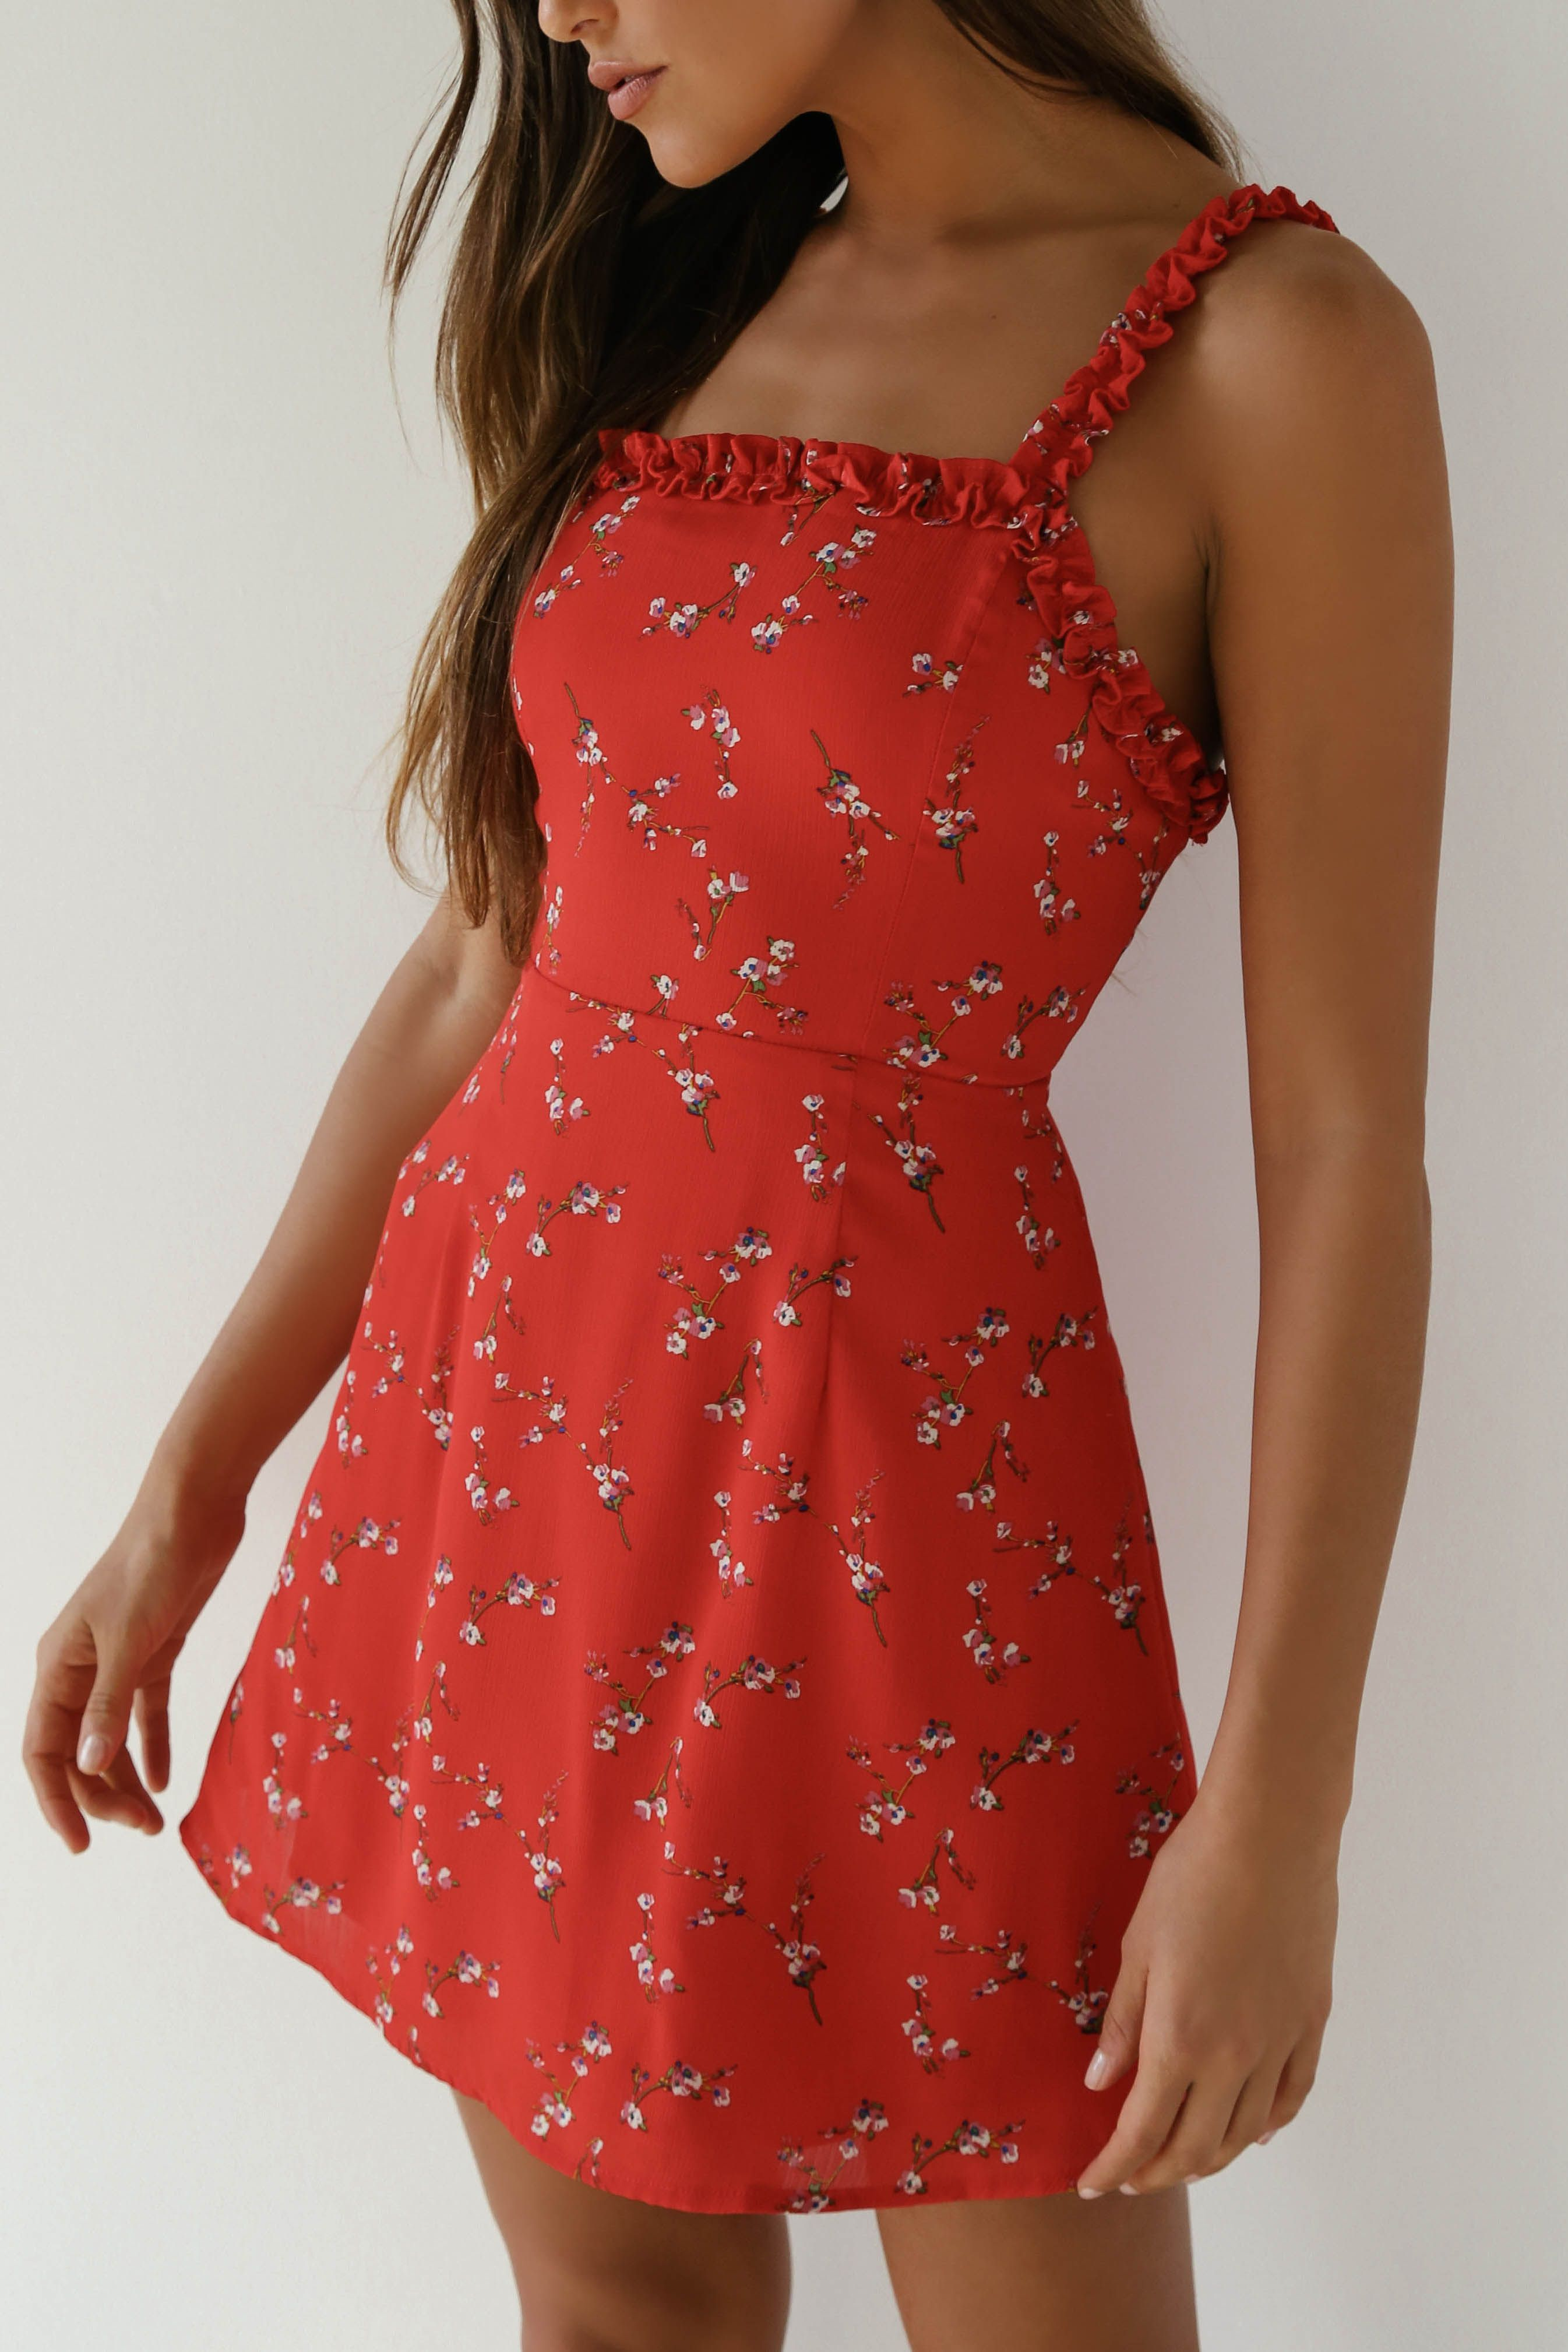 In The Garden Red Floral Print Skater Dress Sundress Outfit Casual Summer Dresses Fashion [ 4036 x 2691 Pixel ]